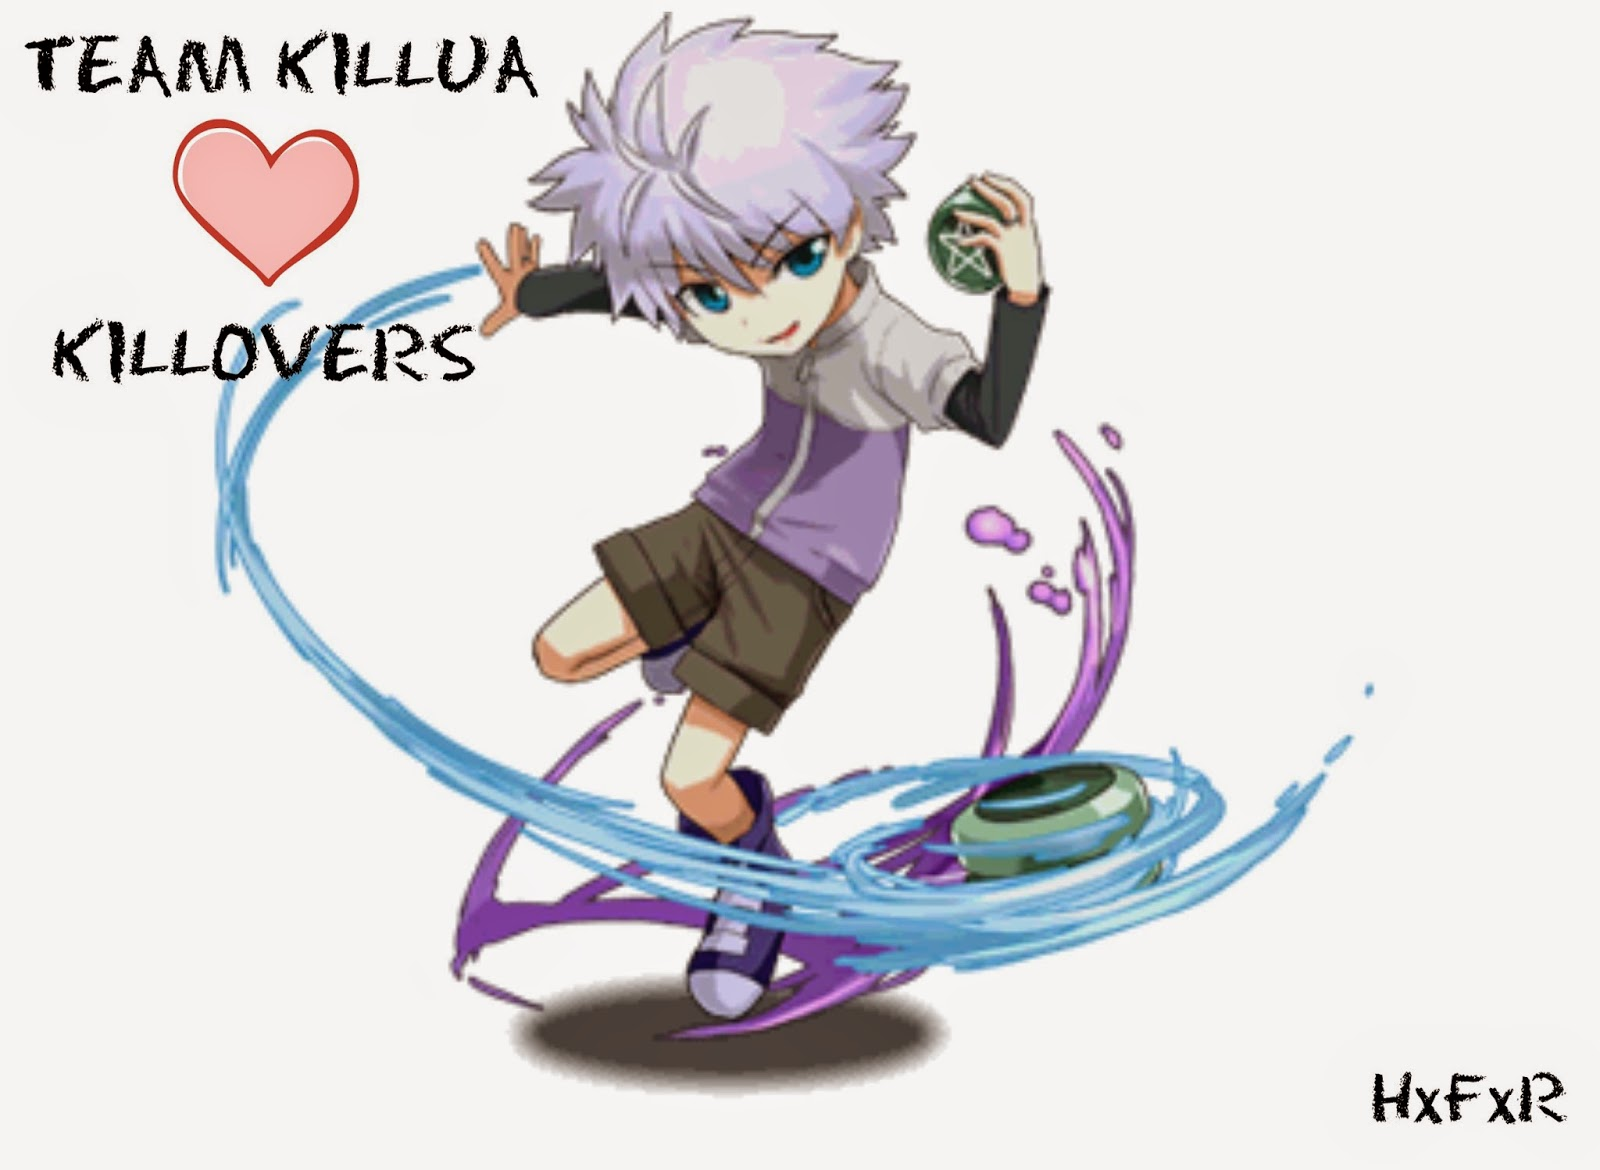 Killovers, Killua, Hunter x Hunter, hxfxr